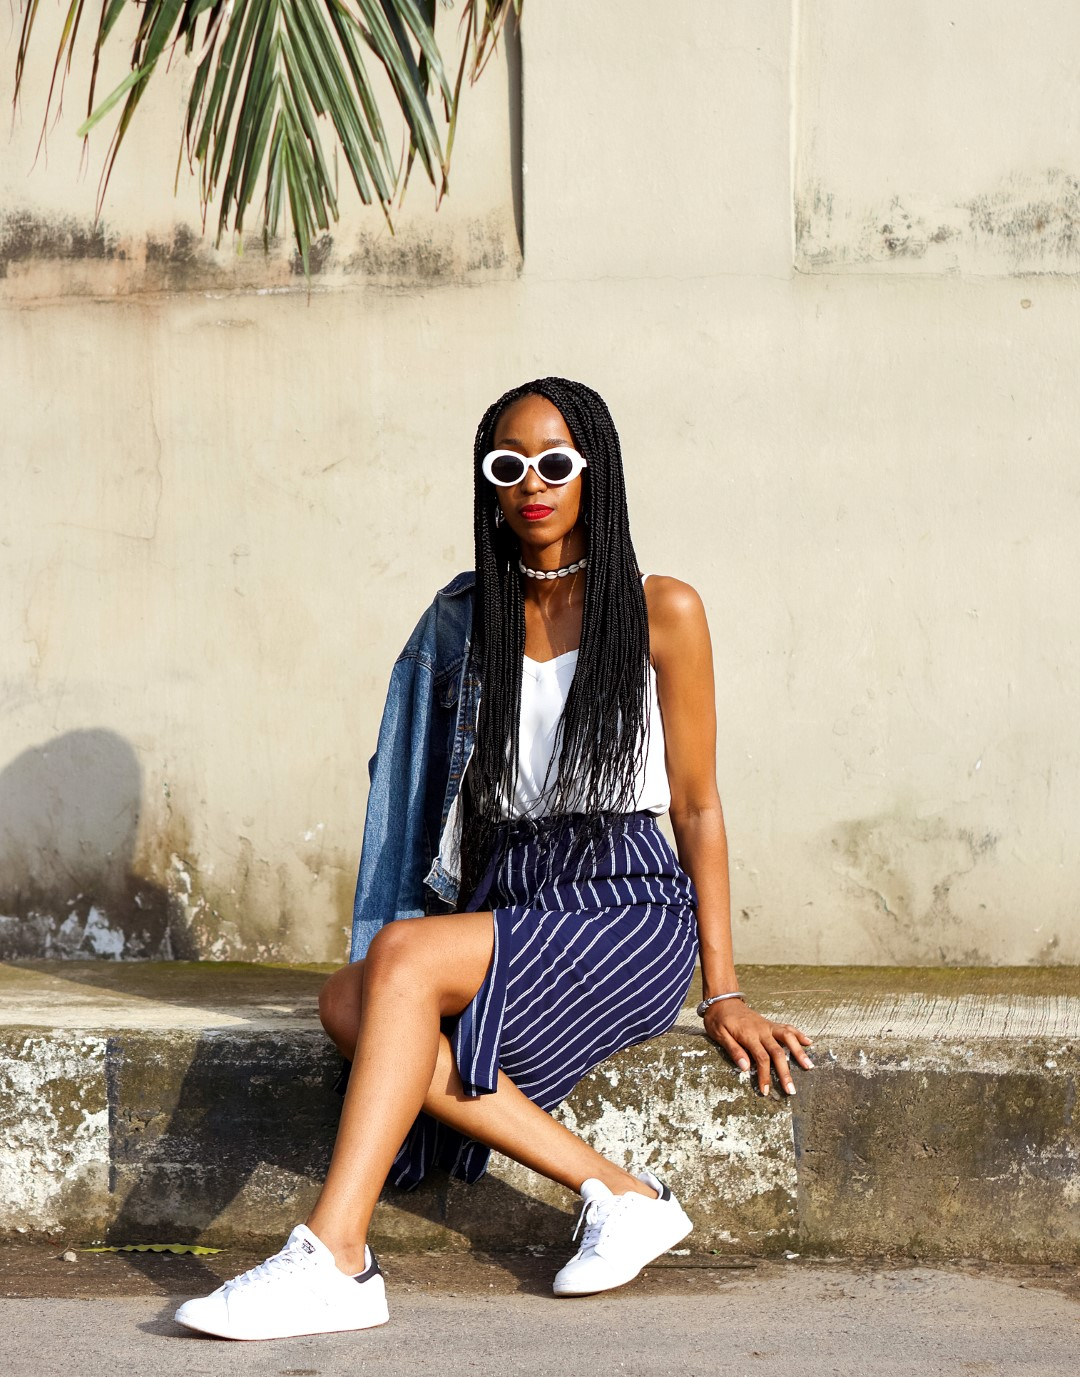 Lifestyle blogger cassie daves styling the skirt and sneakers trend